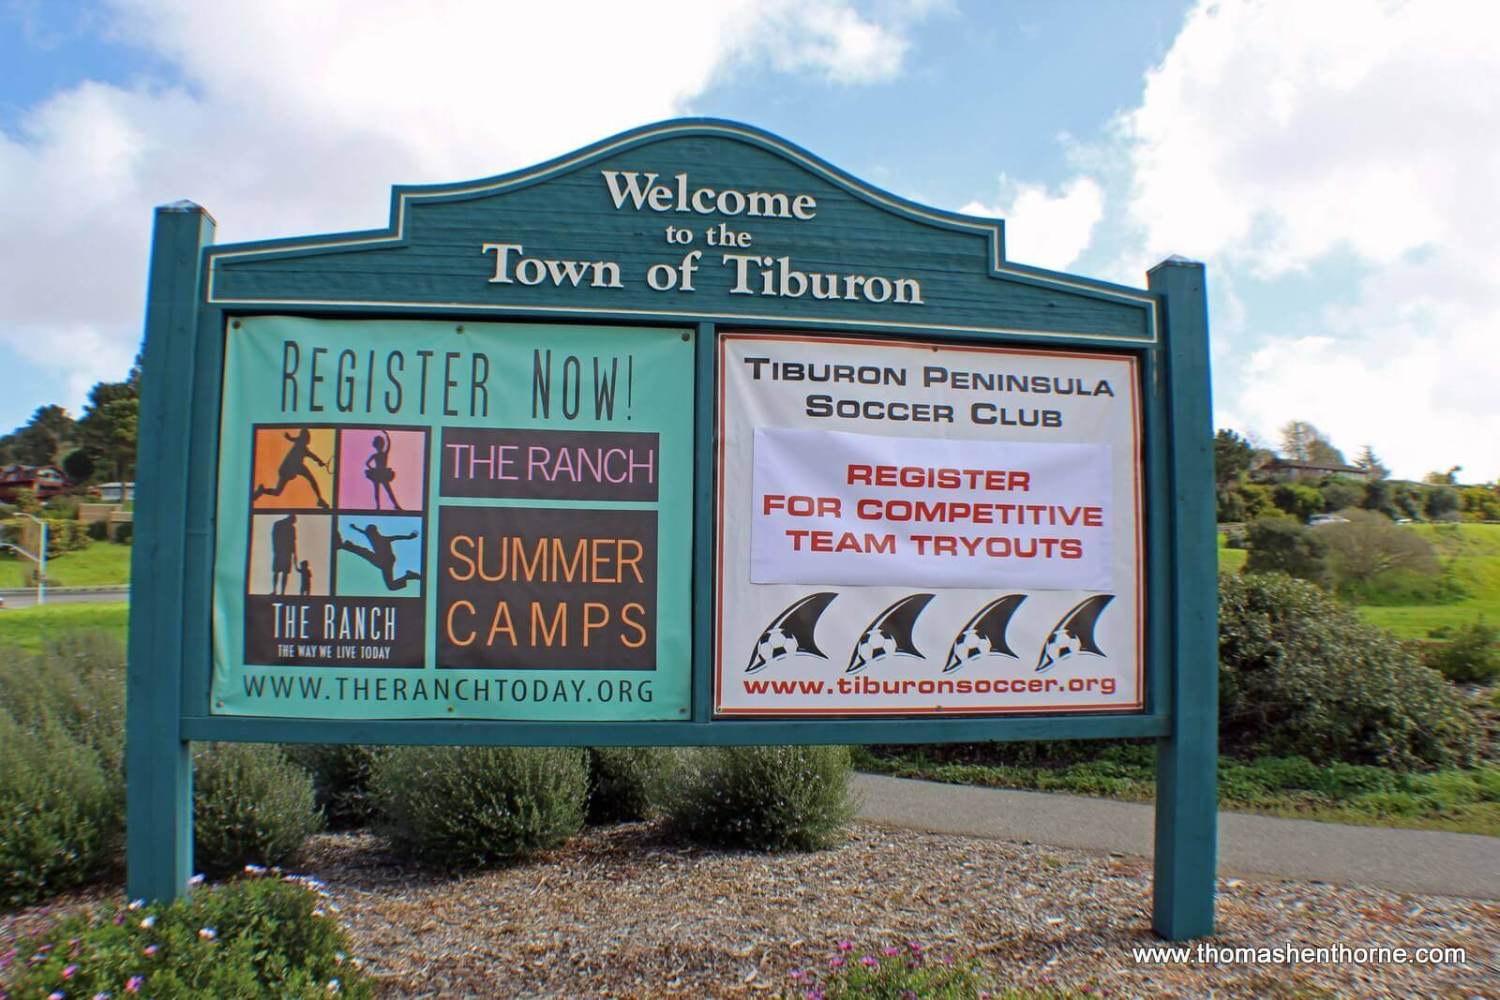 Welcome to the town of Tiburon sign